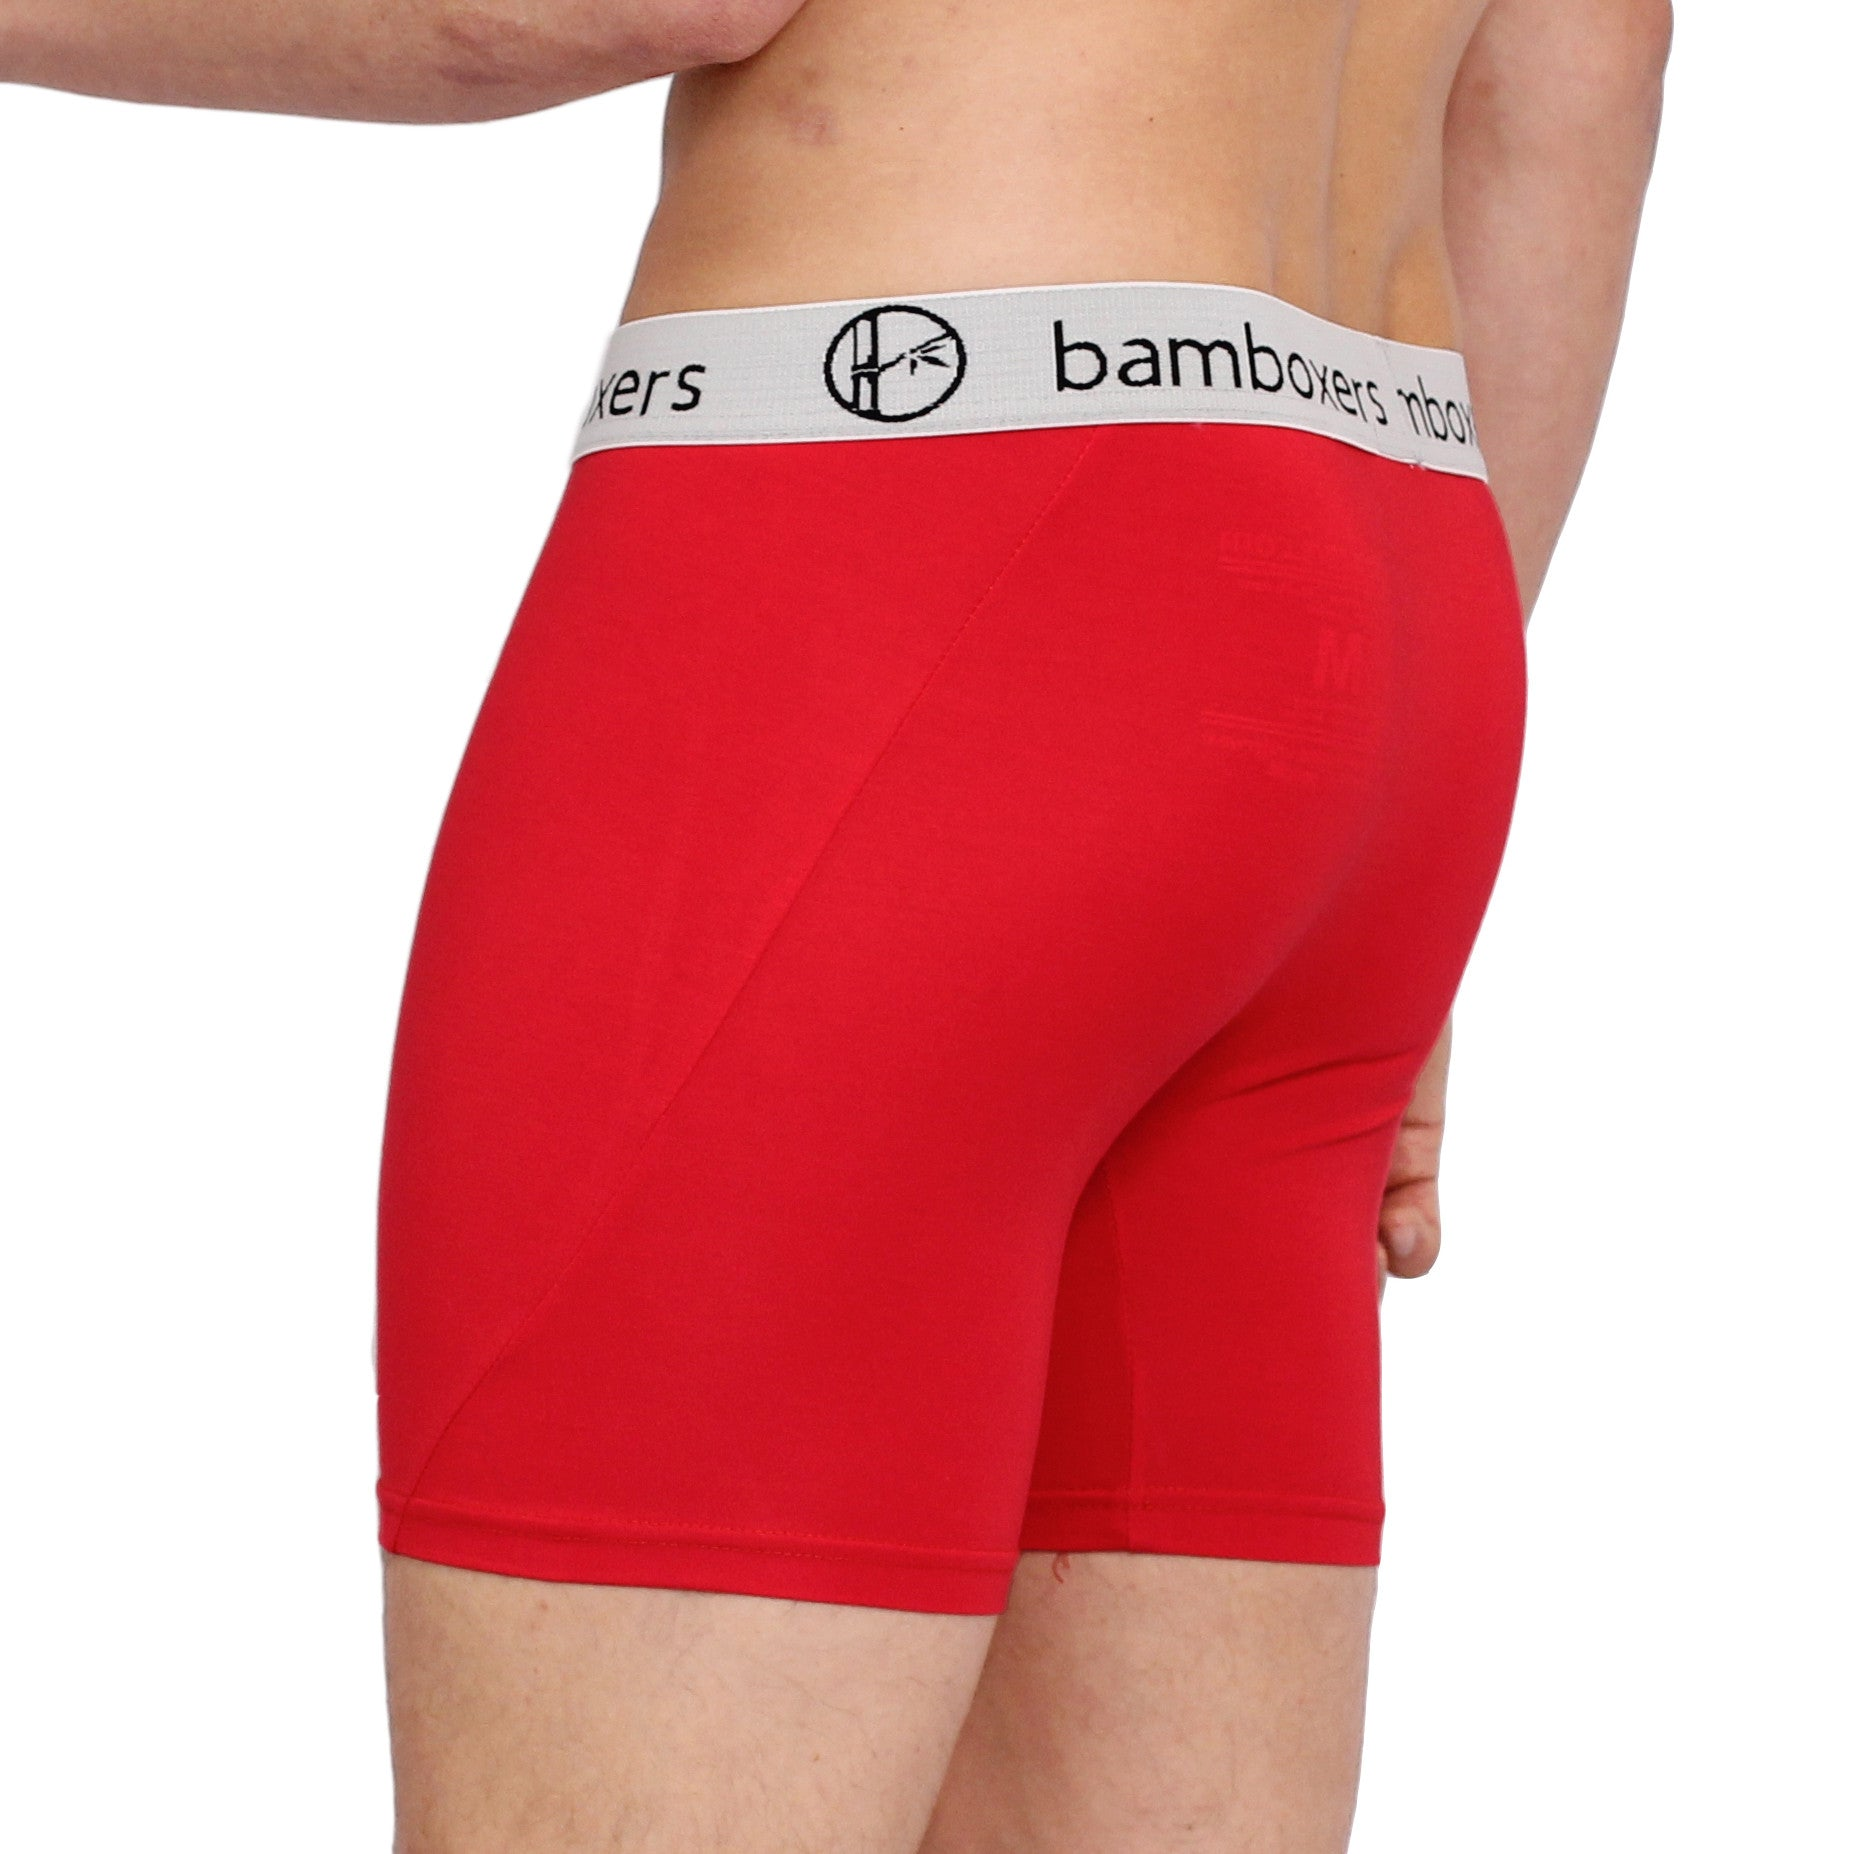 Bamboxers - Big Red - bamboo boxer briefs